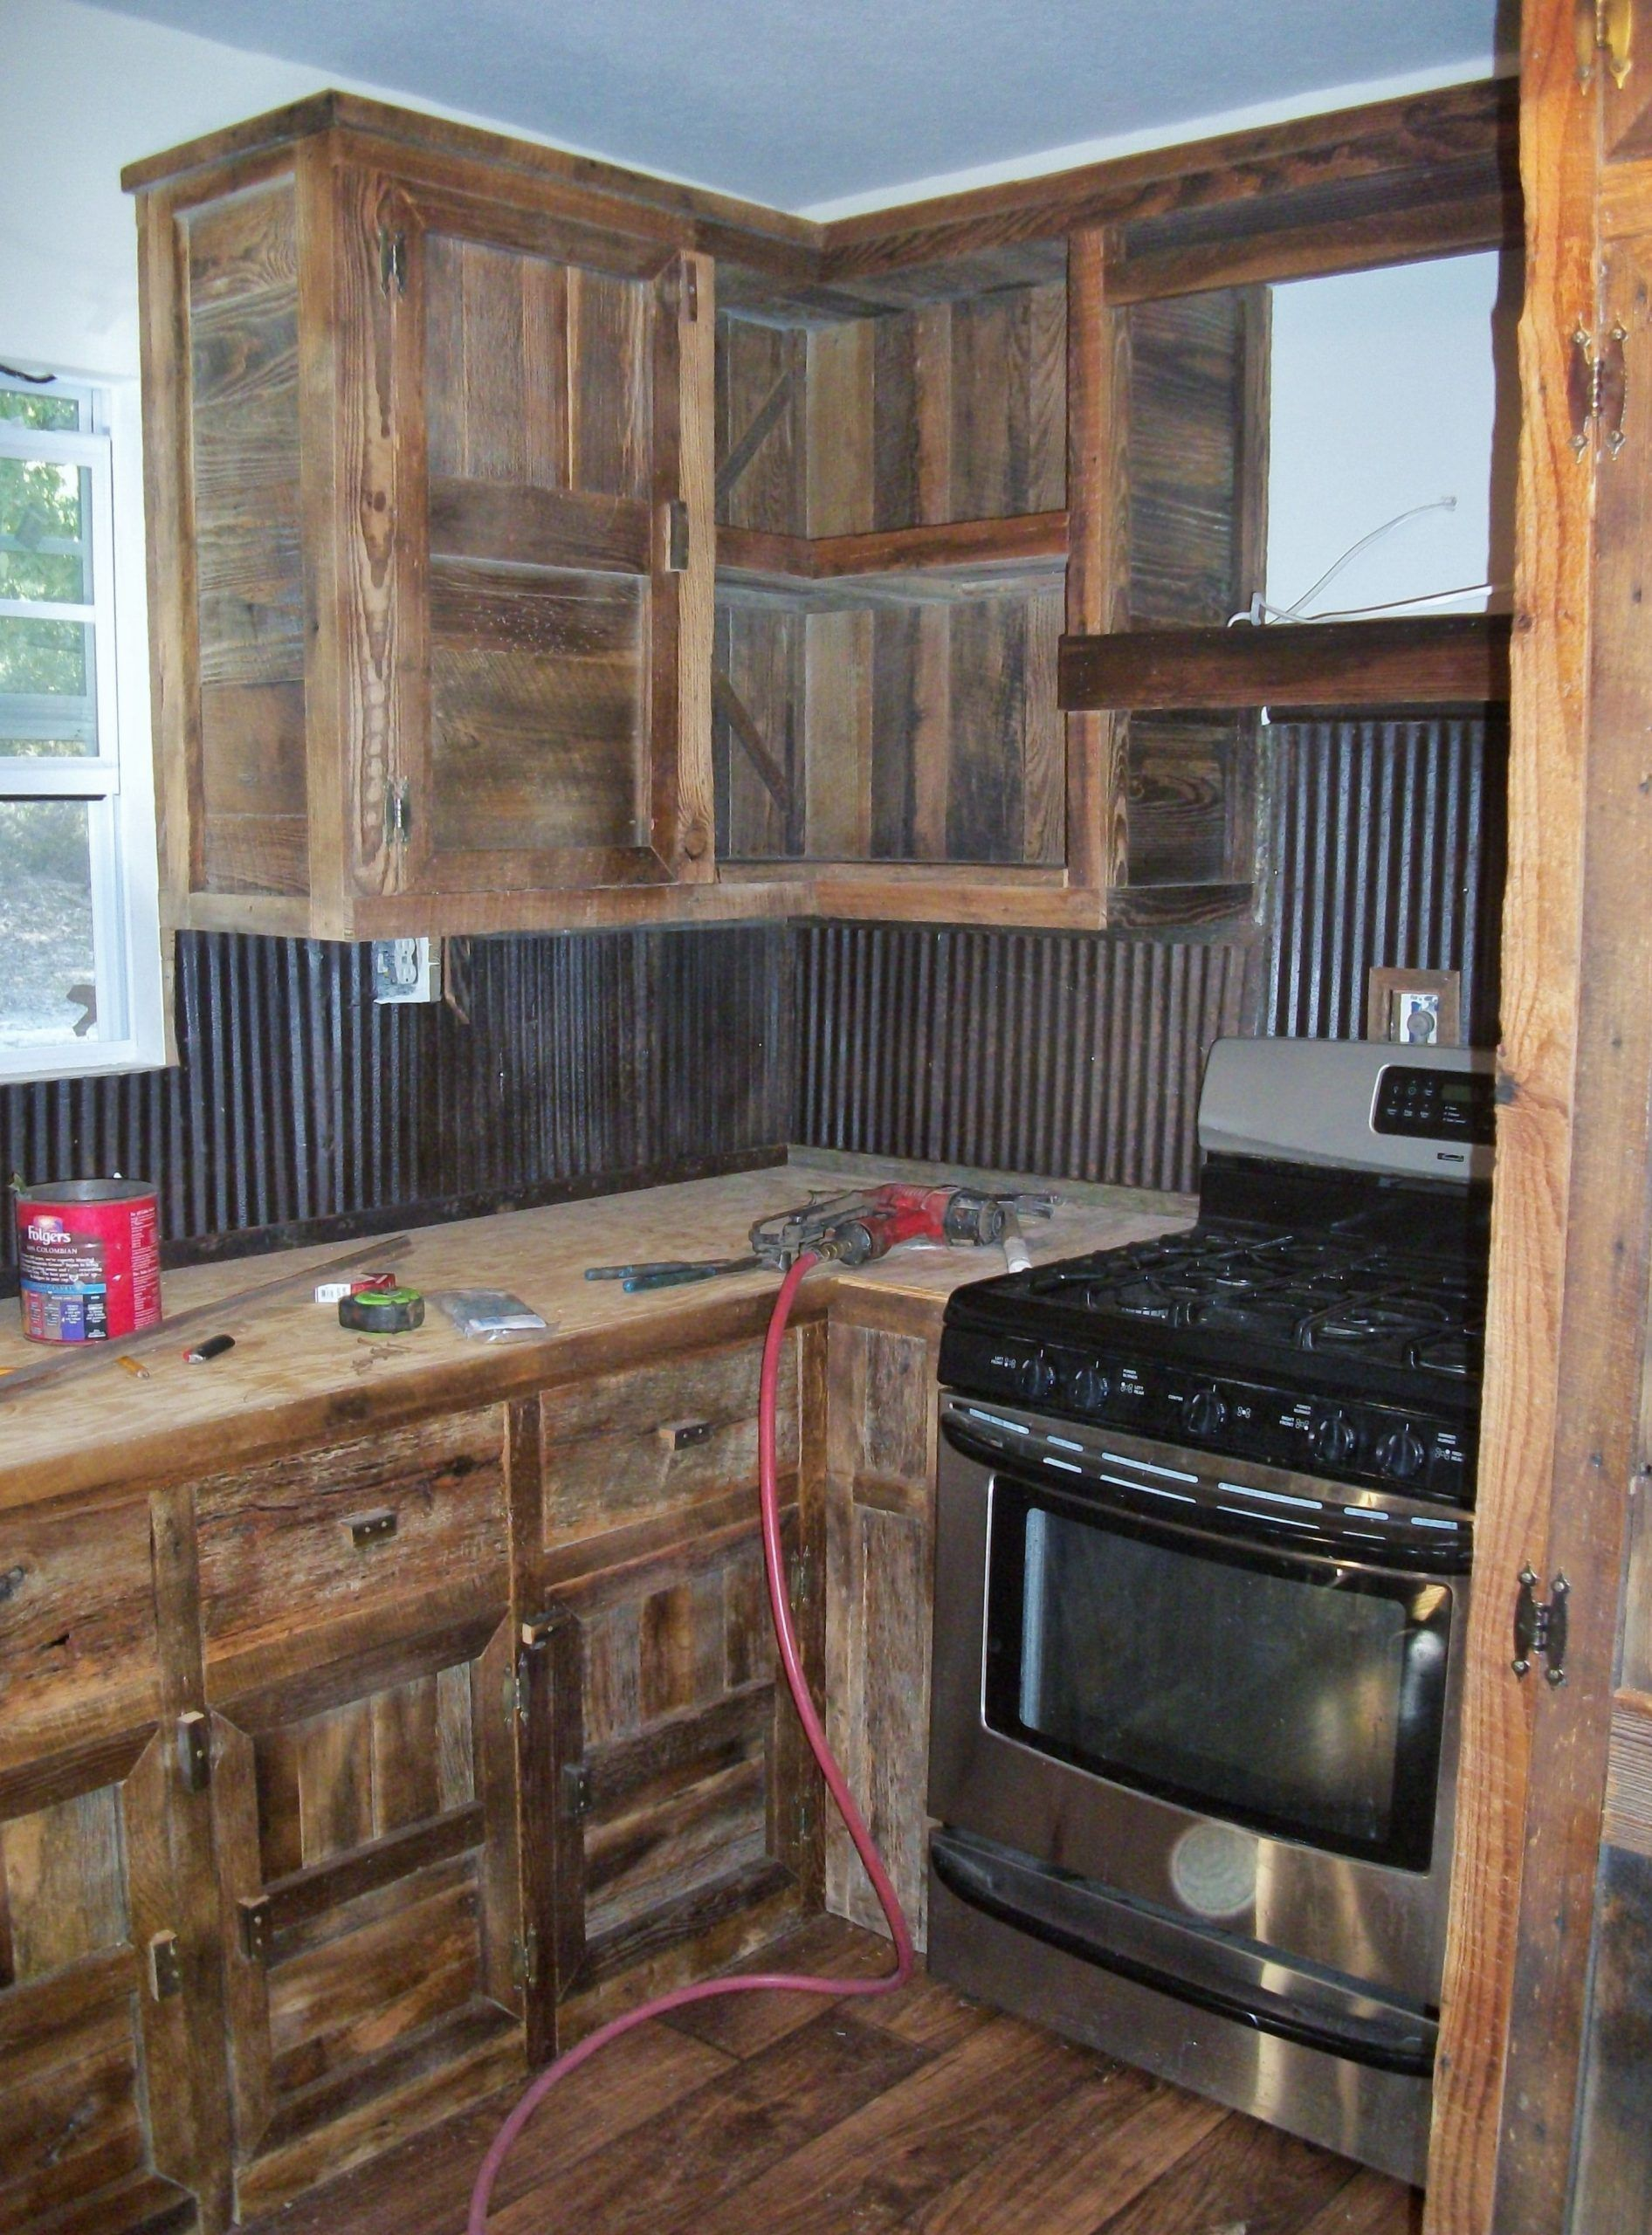 Barn Red Kitchen Cabinets For Sale#barn #cabinets #kitchen ...